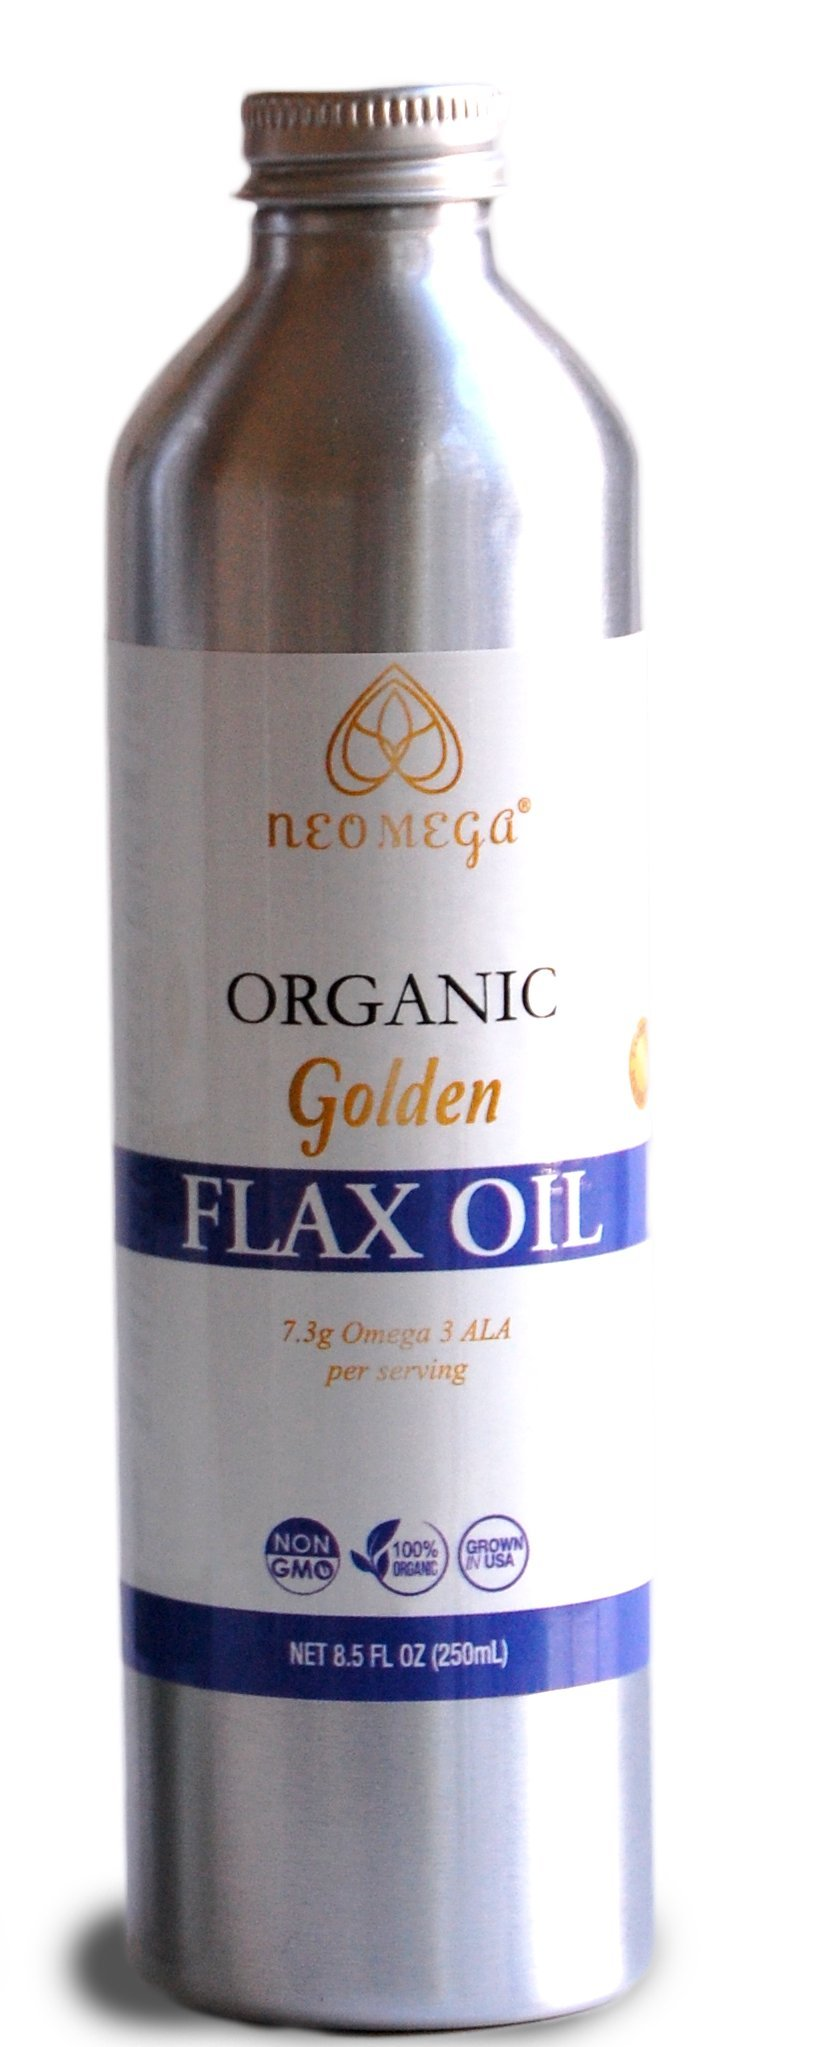 NEOMEGA Organic Golden Flaxseed Oil Virgin, Unrefined Cold Pressed 100% Pure, Product of USA, (8 oz).